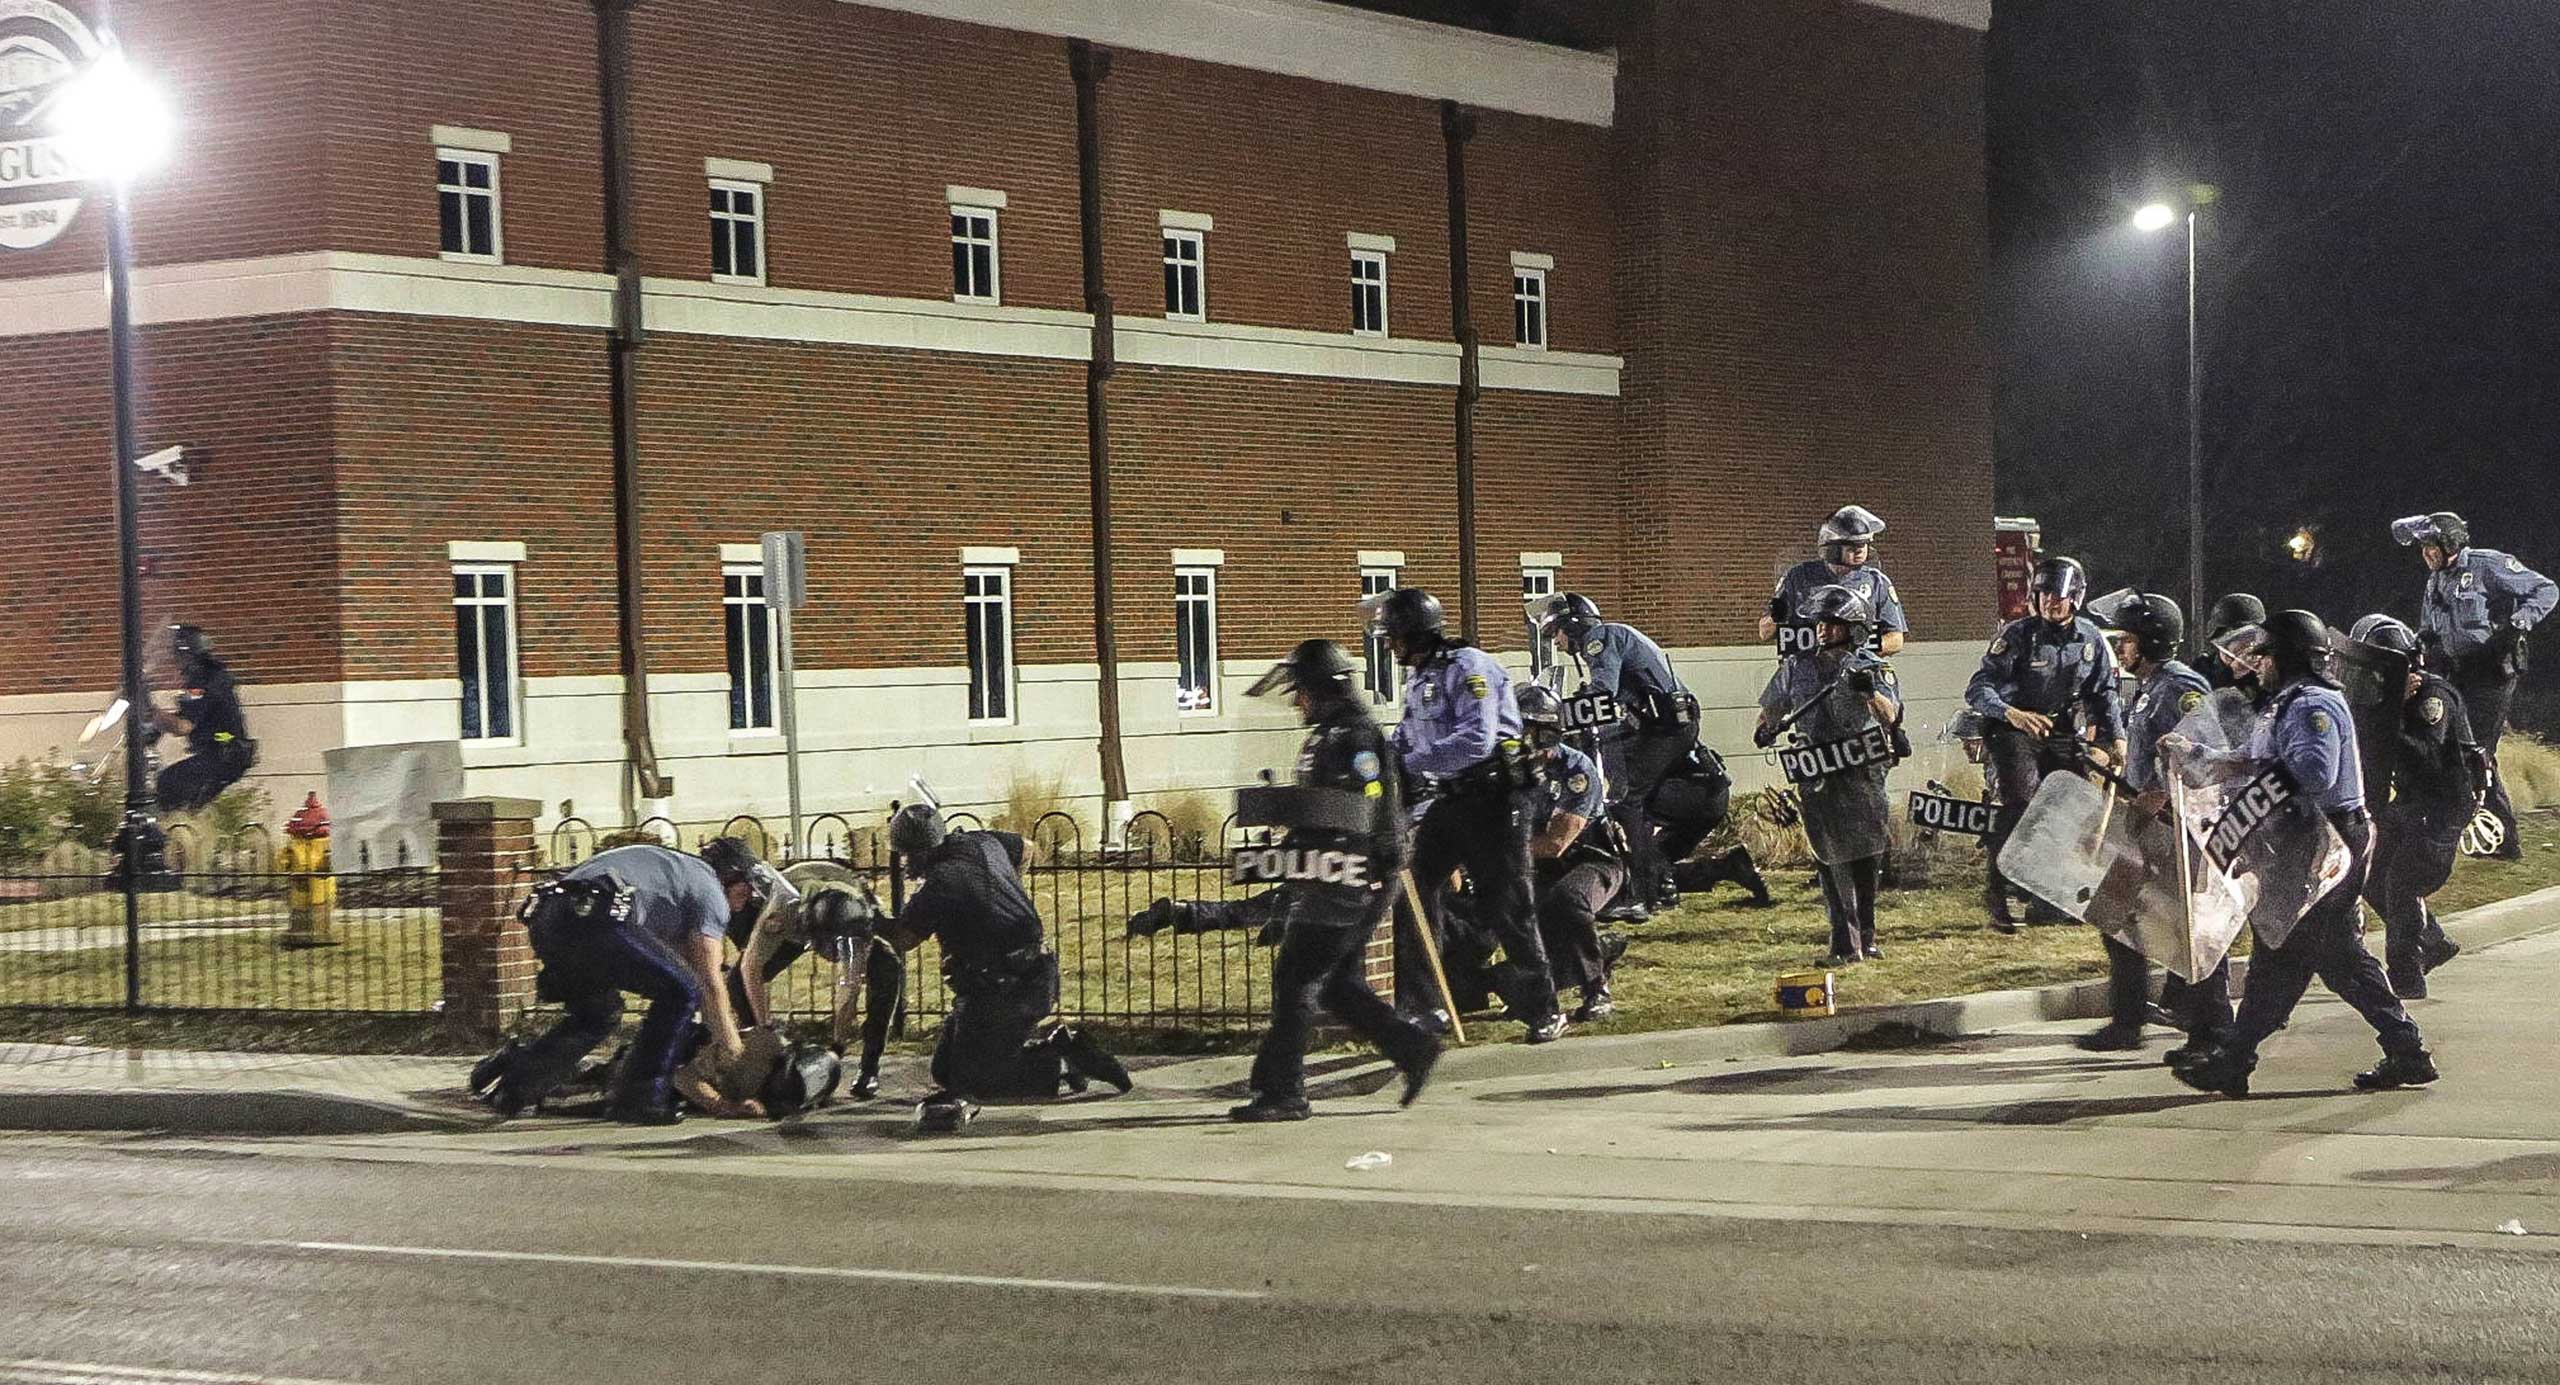 Two police officers were shot outside the Ferguson Police Department March 12, 2015, during a demonstration that followed the resignation of the agency's embattled police chief. The two officers—one from Webster Groves, Mo., the other from St. Louis County—were seriously injured.